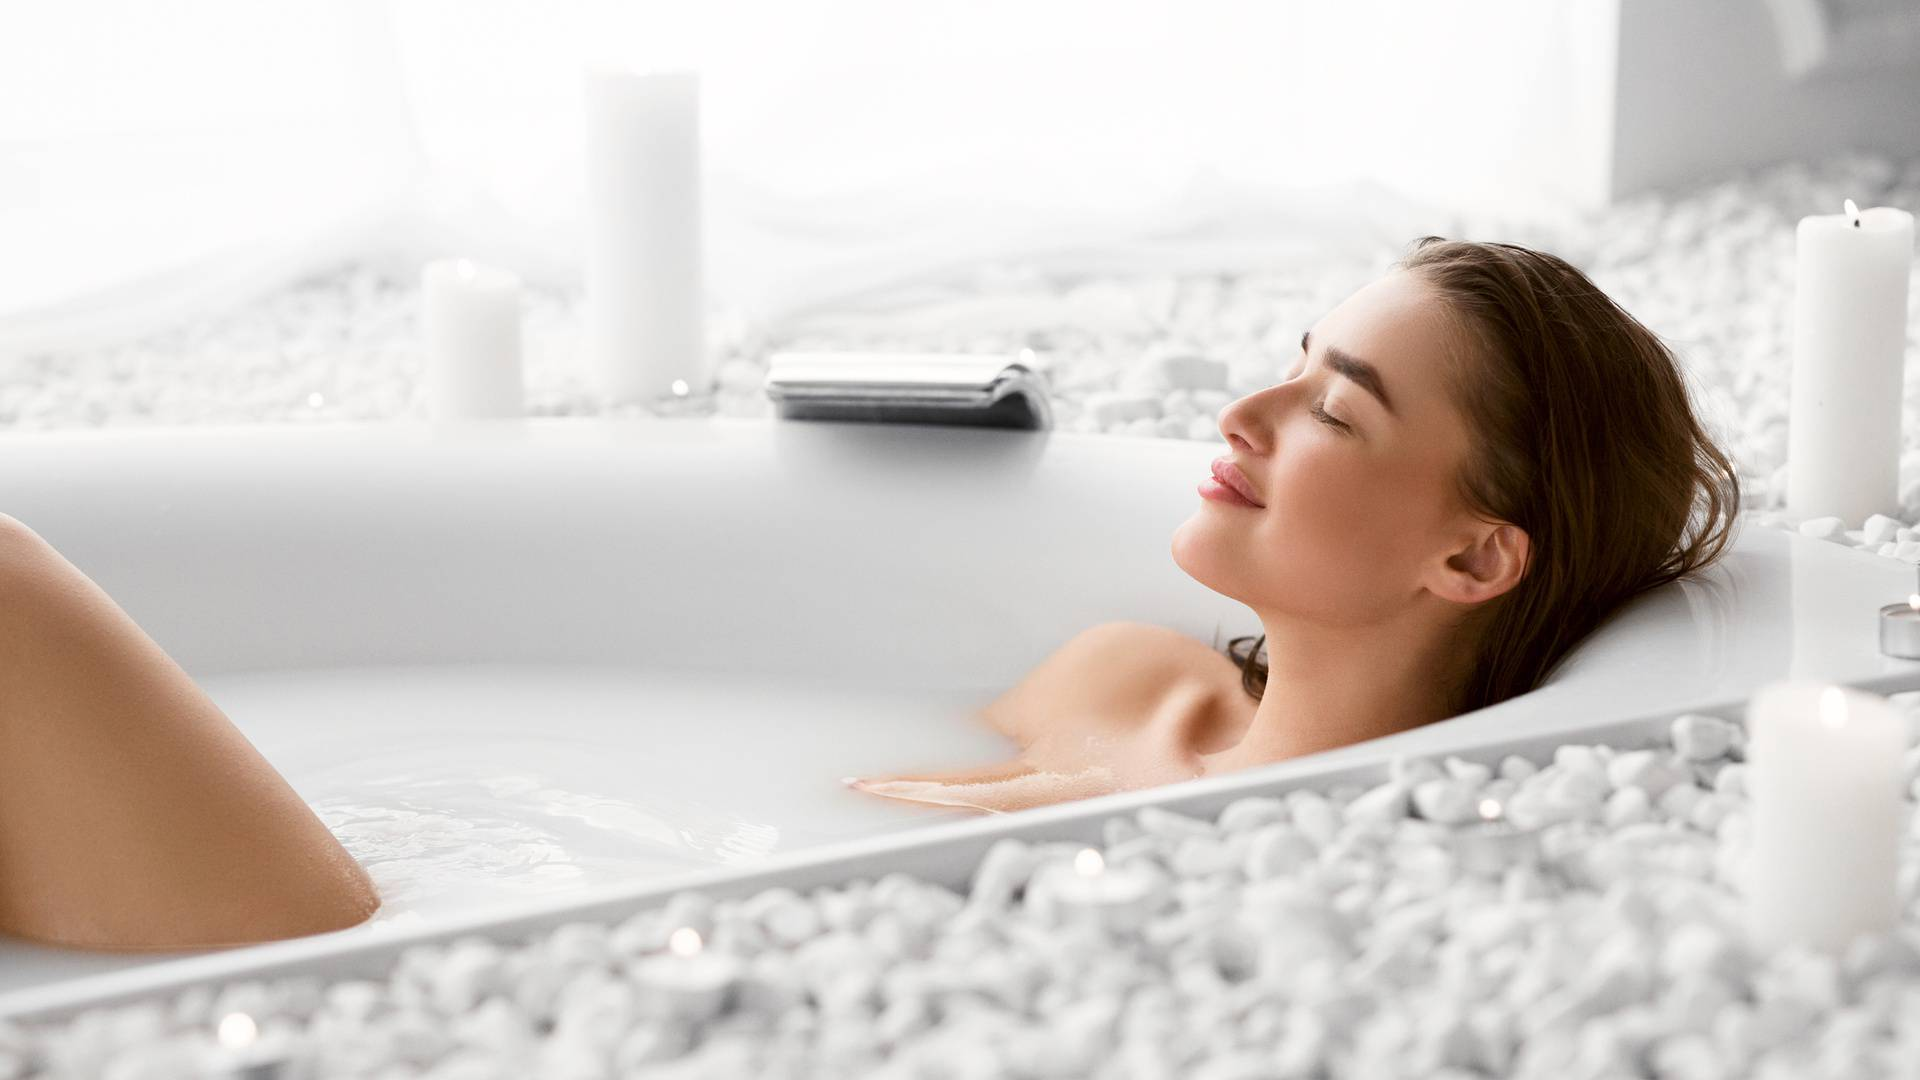 Wellness And Relax Concept. Woman Resting In Bath